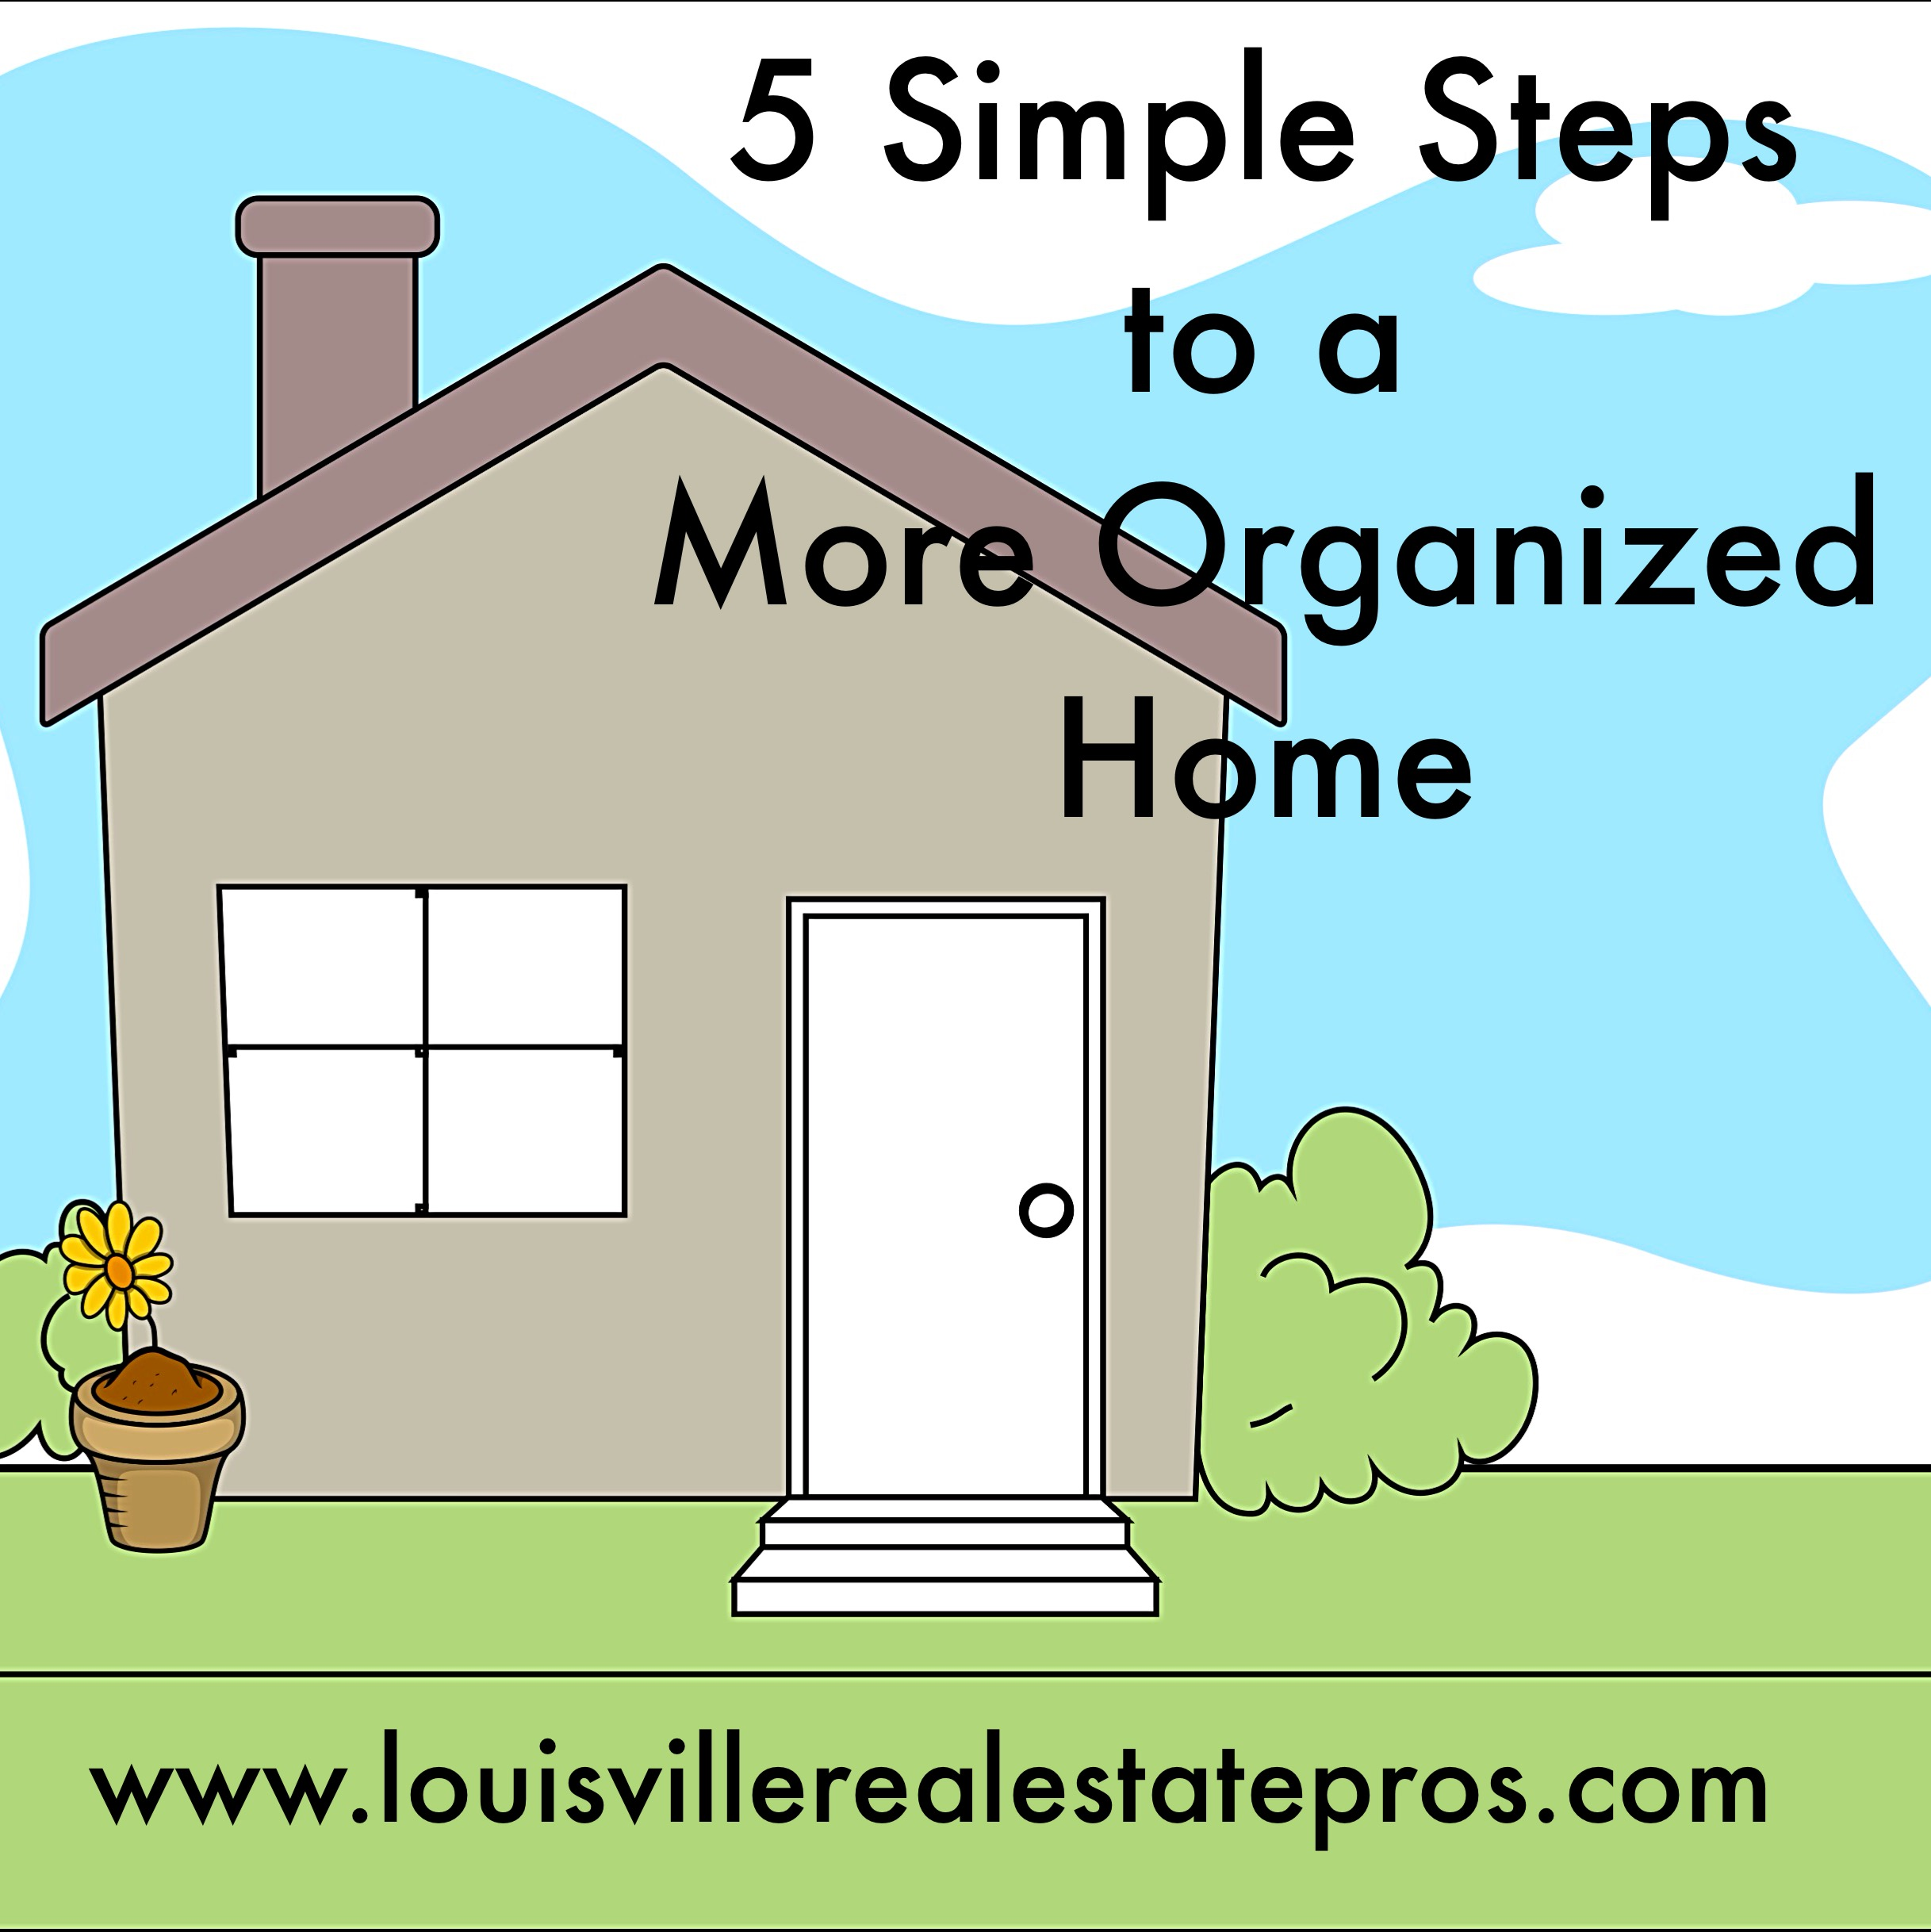 5 Simple Steps to a More Organized Home